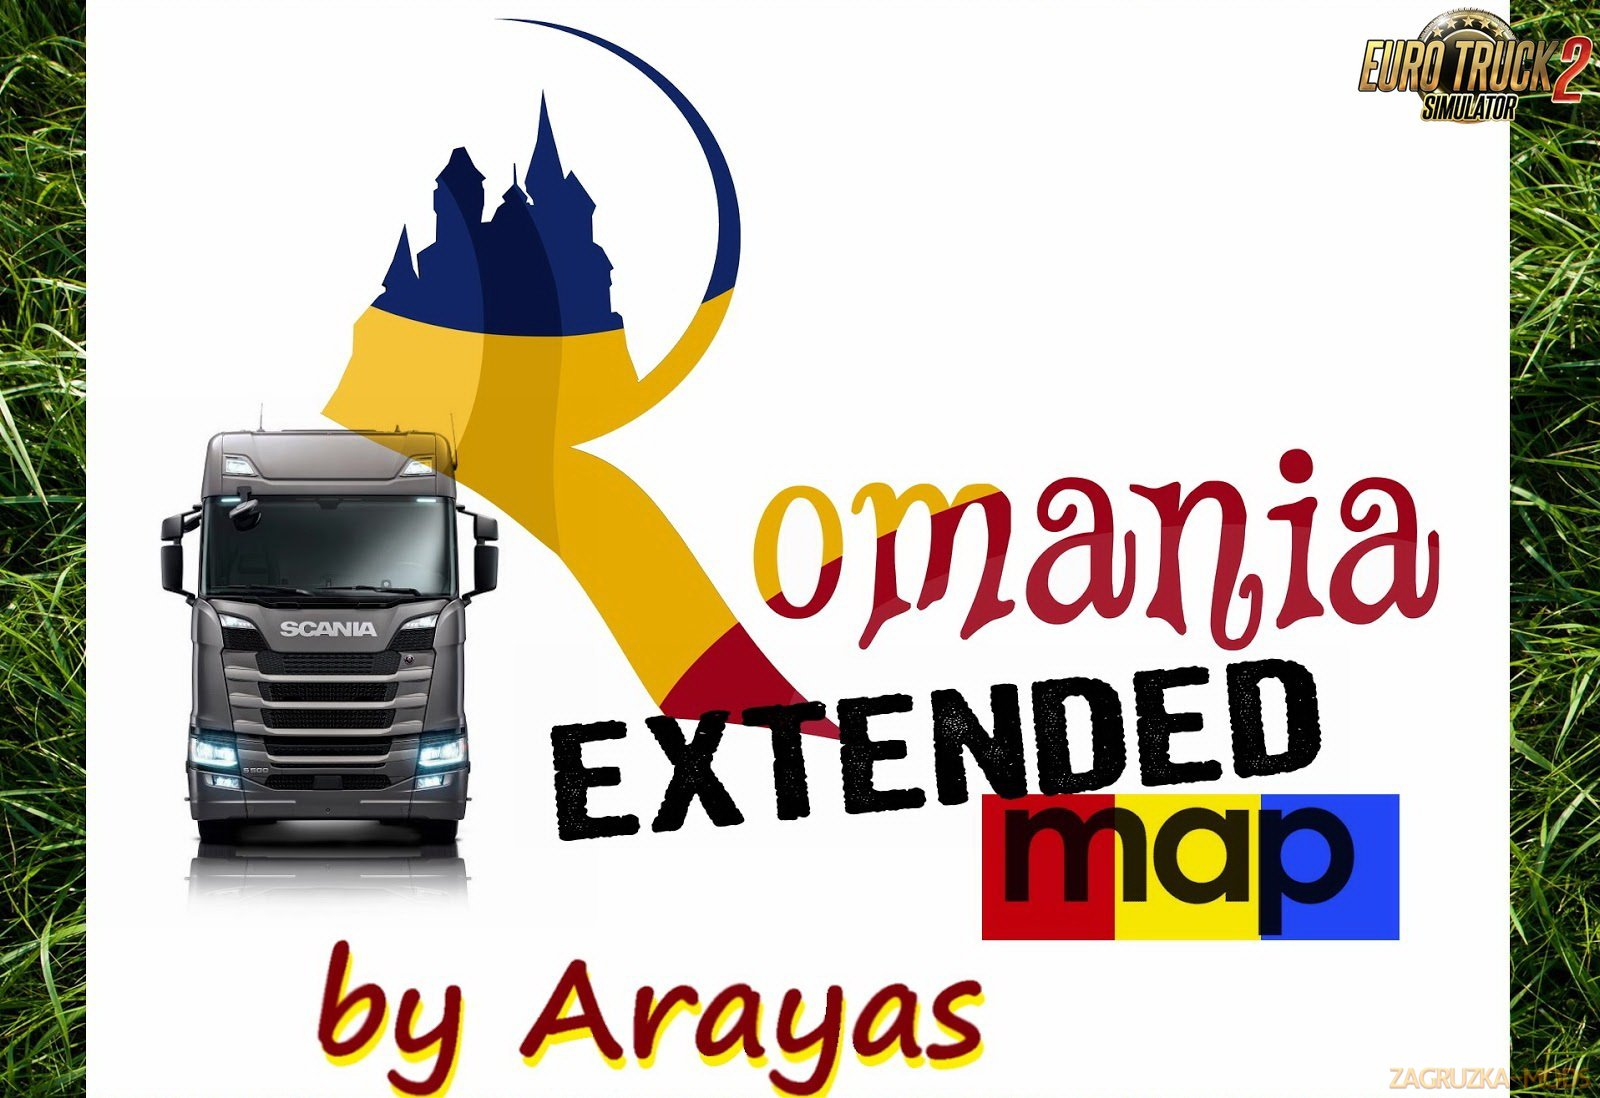 Romania Extended Map v1.9 by Arayas [1.32.x]